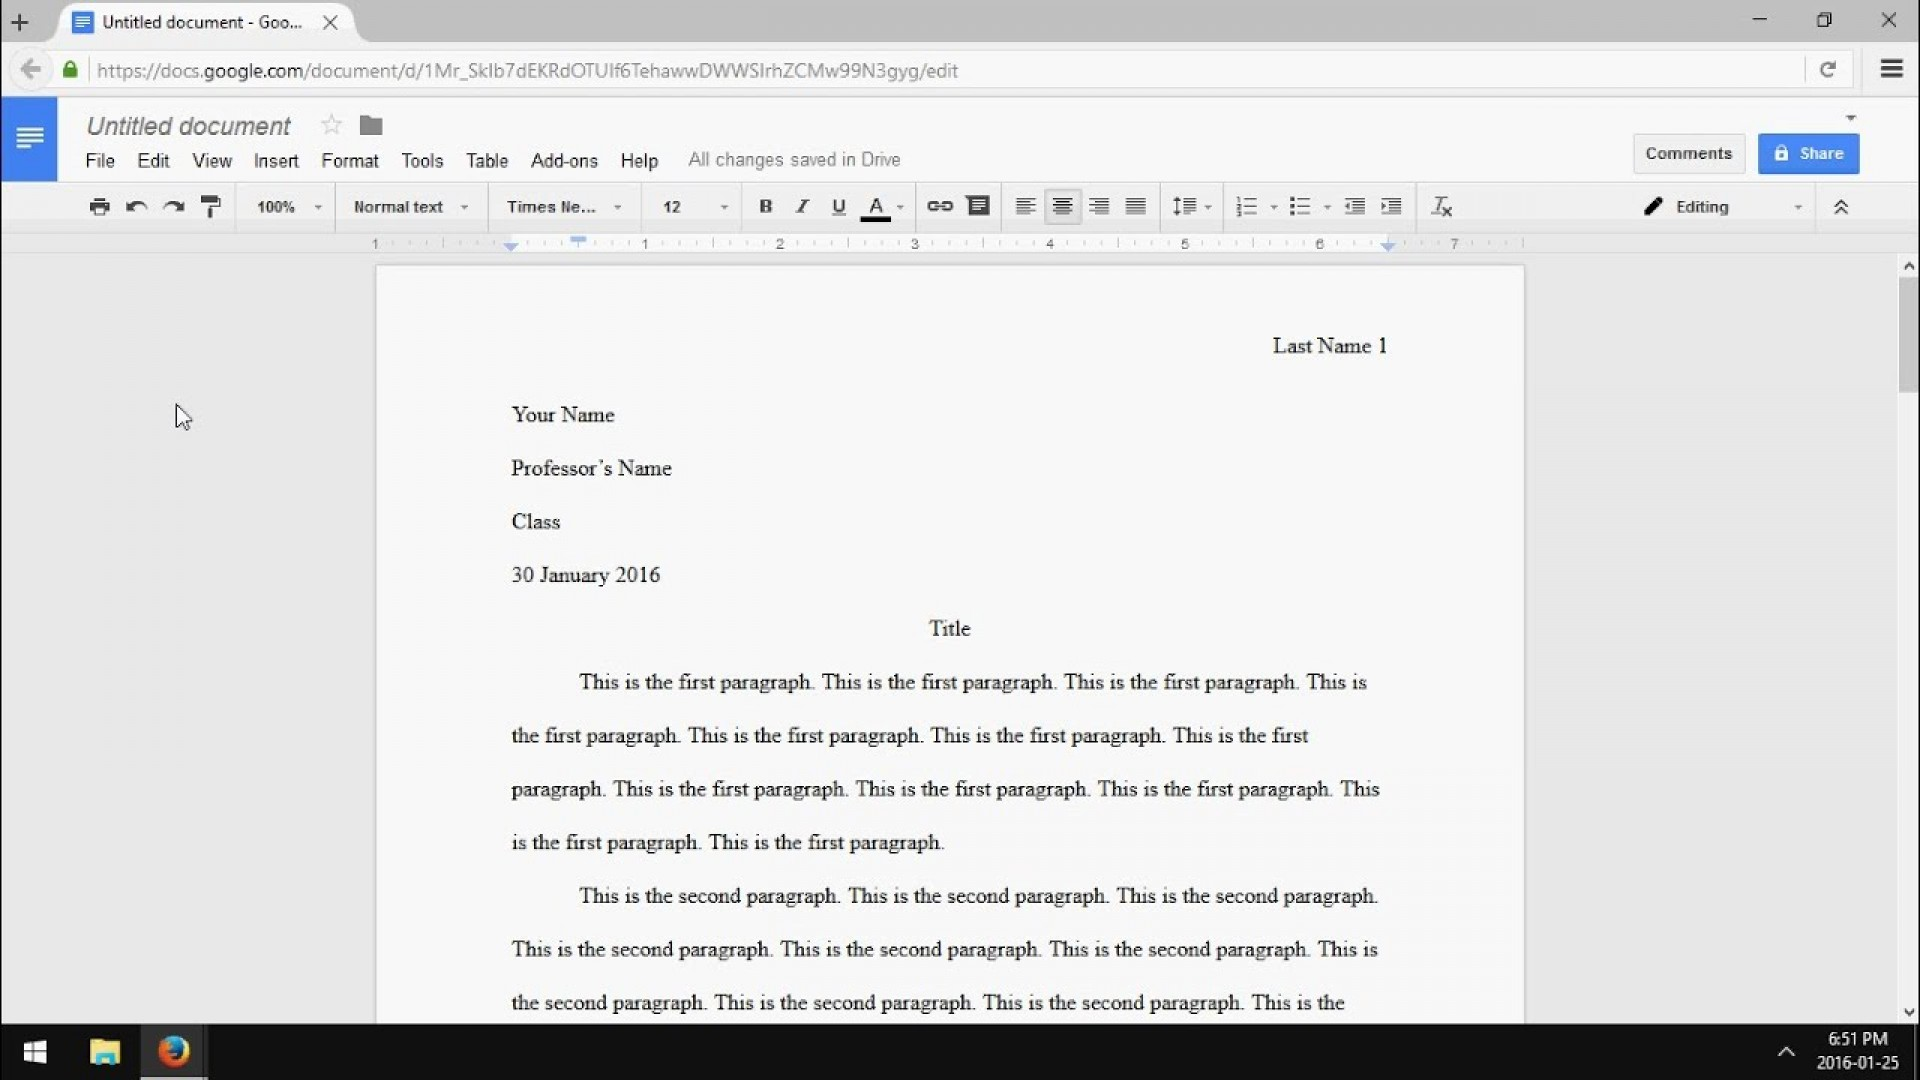 017 Maxresdefault Mla Essay Format Sensational Template Google Docs Sample 1920